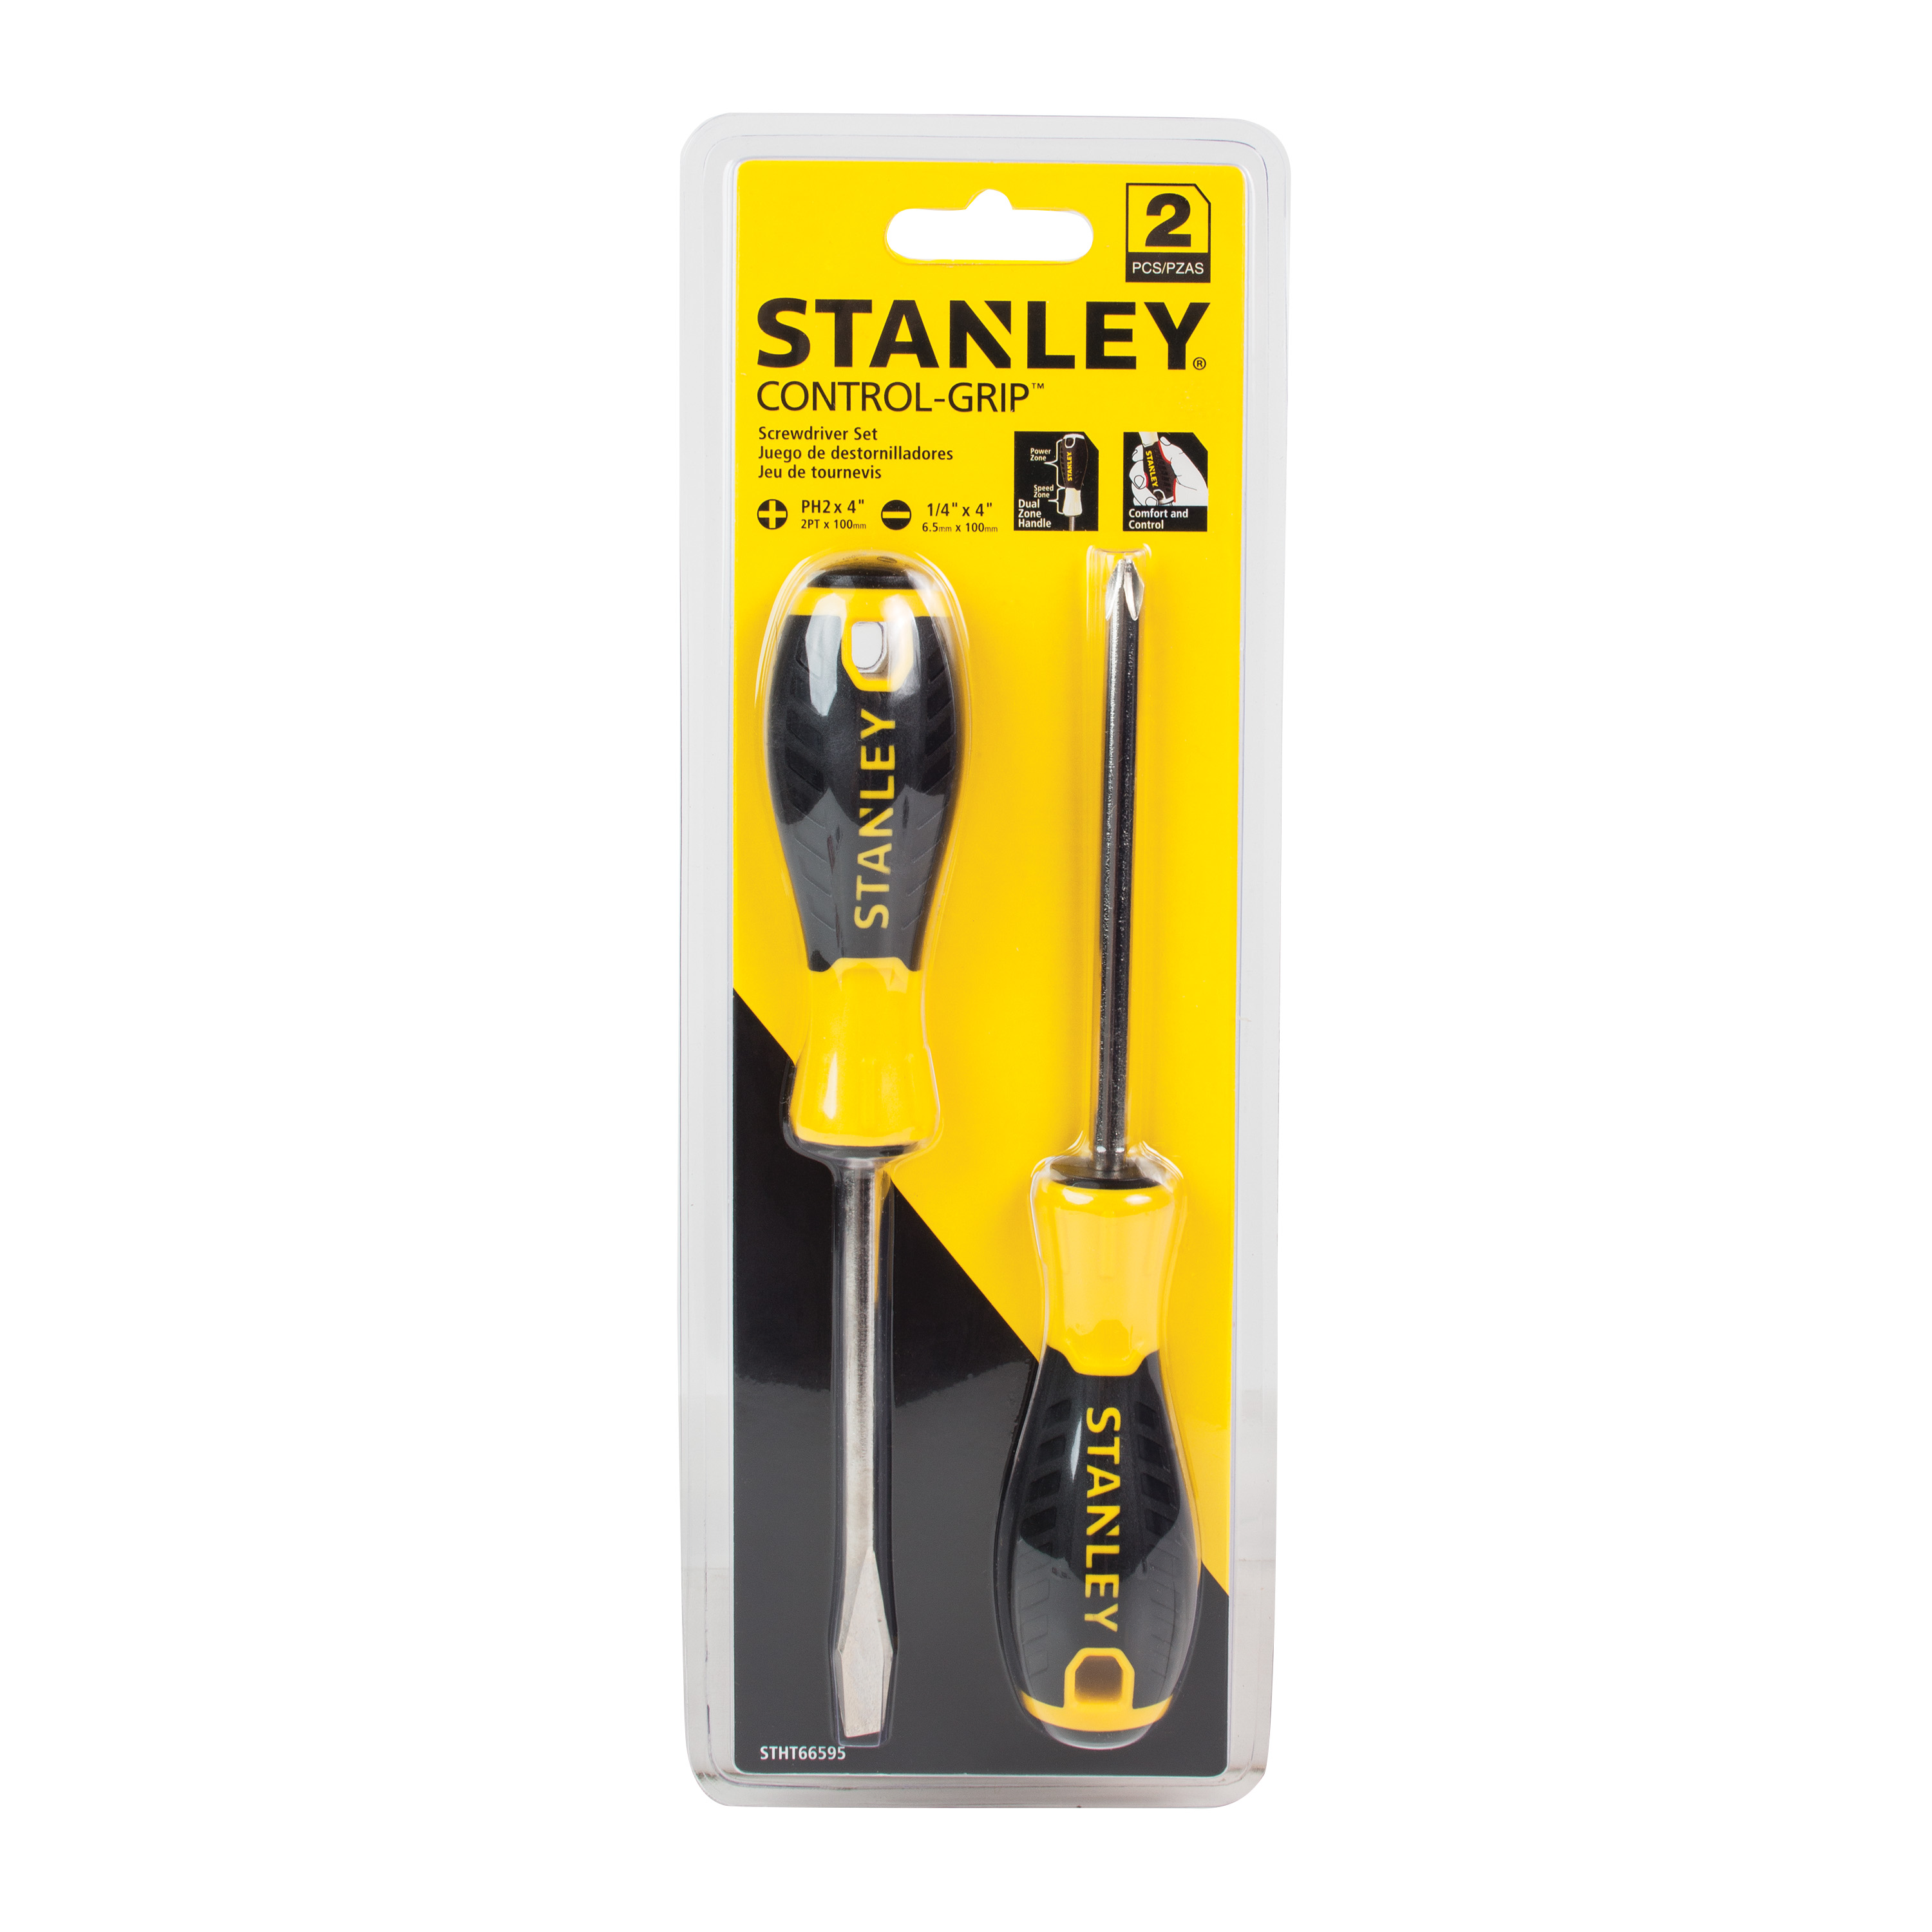 Stanley STHT66595 2pk Control Grip Screwdrivers